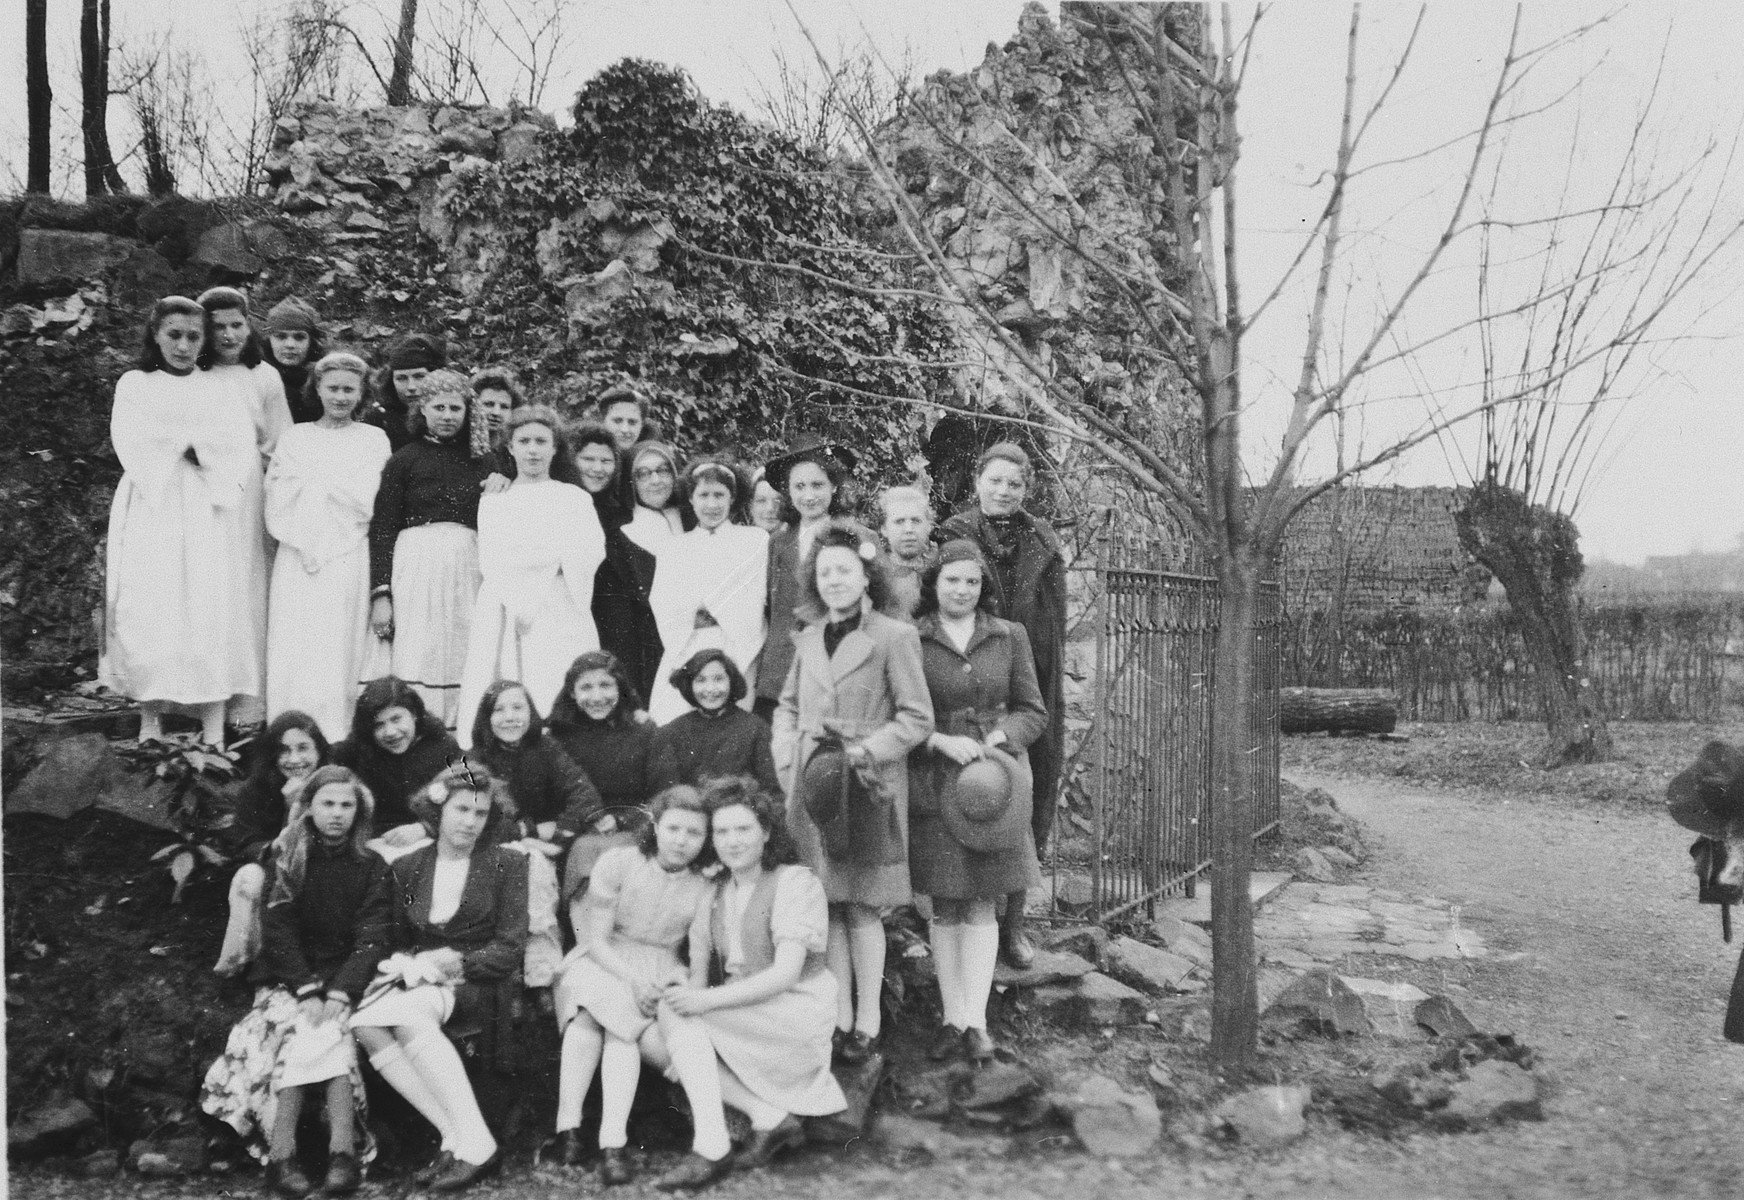 A large group of girls, some wearing white dresses, pose outside a grotto near the Convent St. Antoine de Padua following the first communion of some of the girls.  Among those pictured are Jewish girls hiding in the convent.